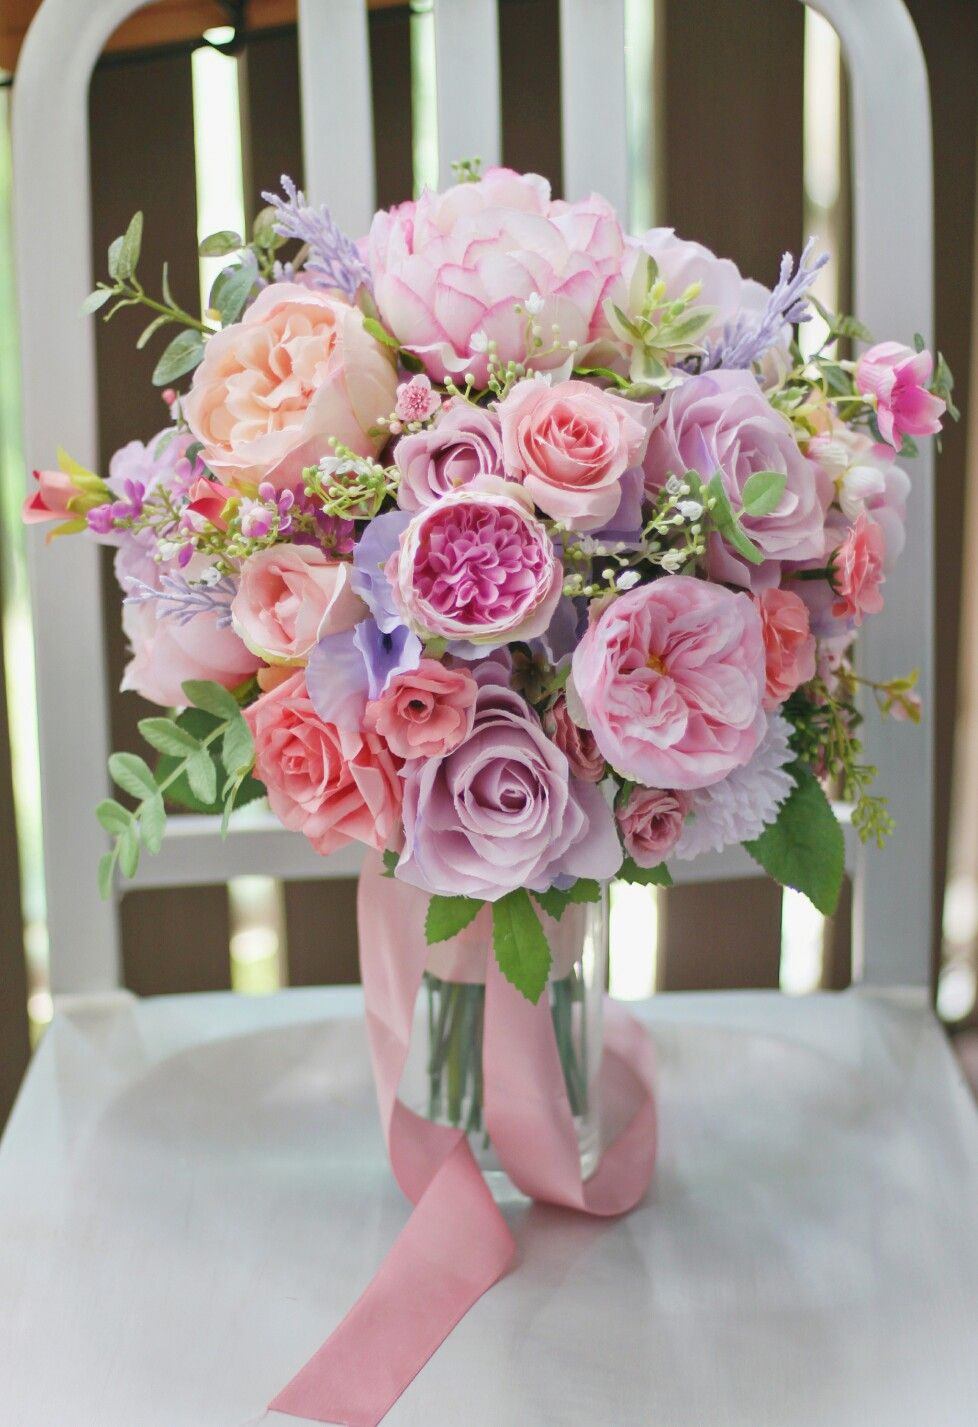 Pin by Amanda Bailey on Floral arrangements | Pinterest | Flowers ...